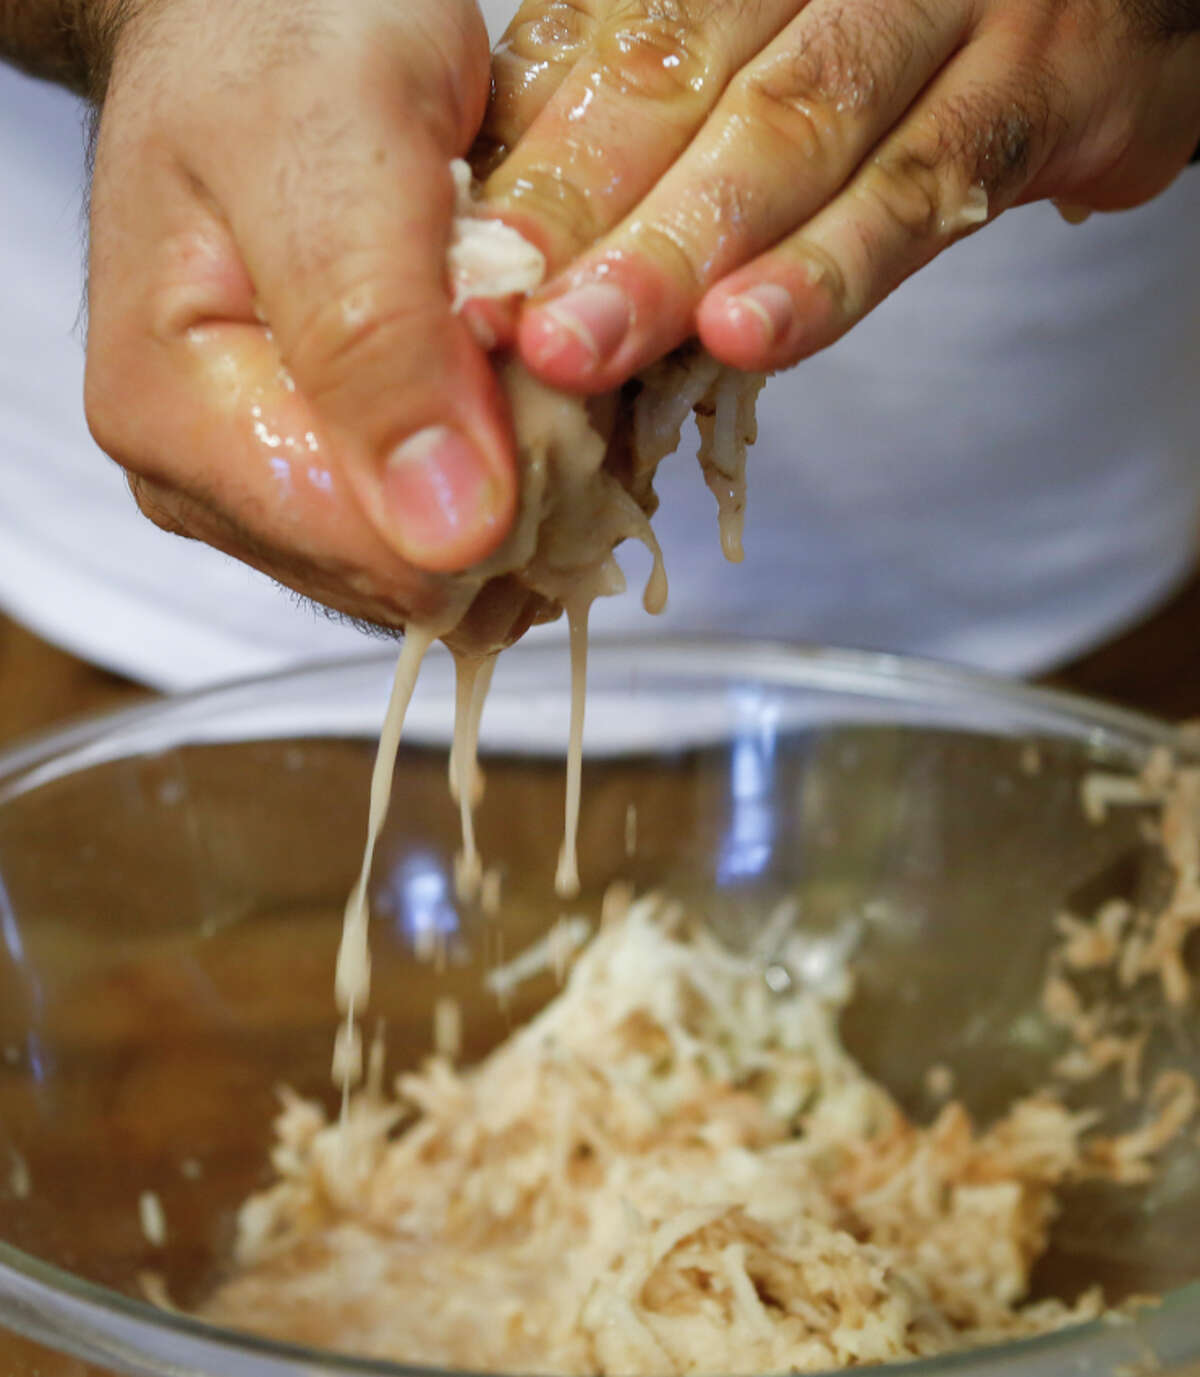 Squeezing the excess moisture from the grated potatoes also ensures the latkes will be crunchy instead of soggy.